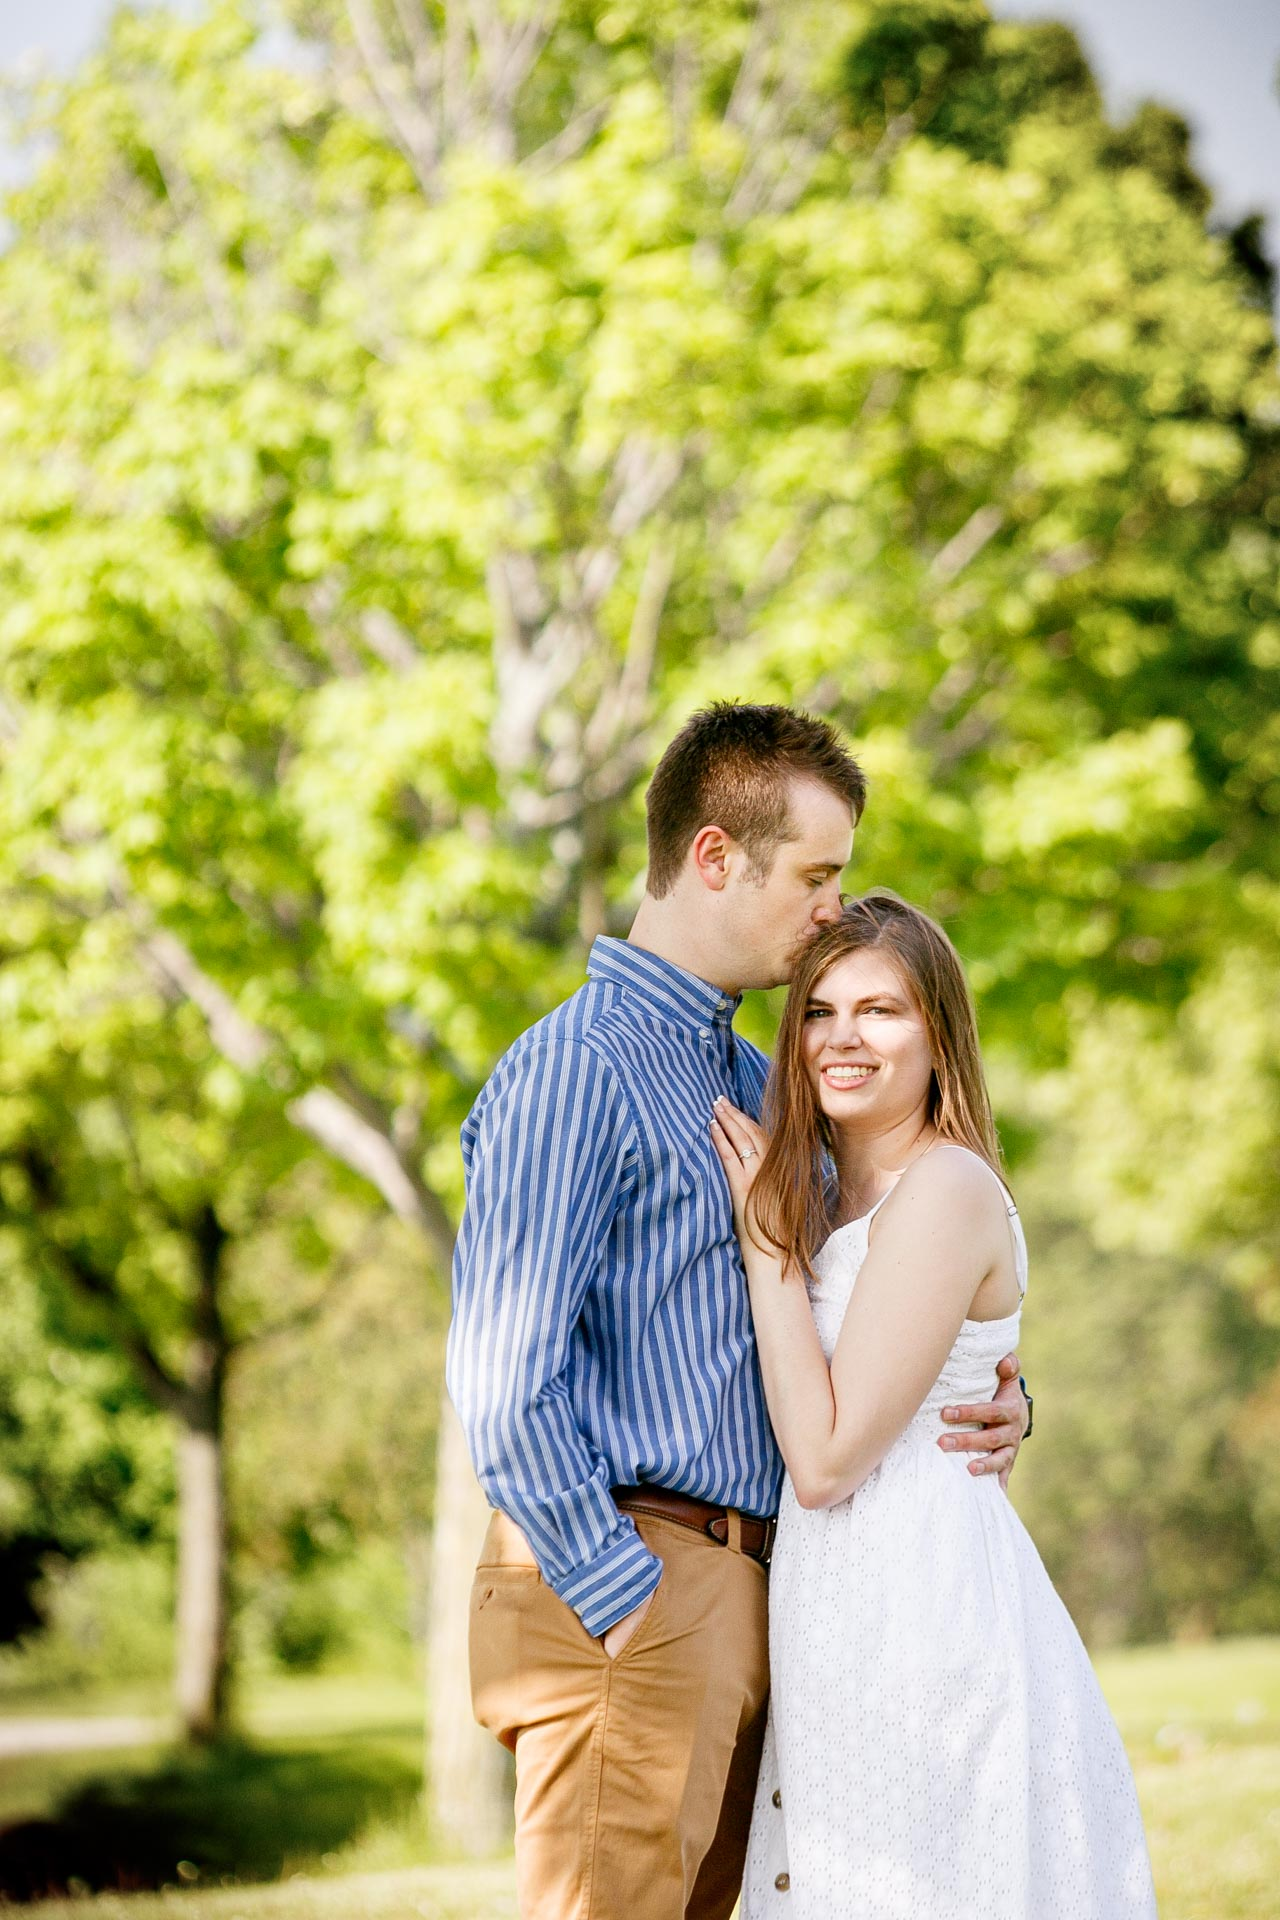 engagement-photos-voyageur-park-de-pere-wisconsin-wi-adam-shea-photography-adam-shea-photography-green-bay-appleton-neenah-photographer-06.jpg